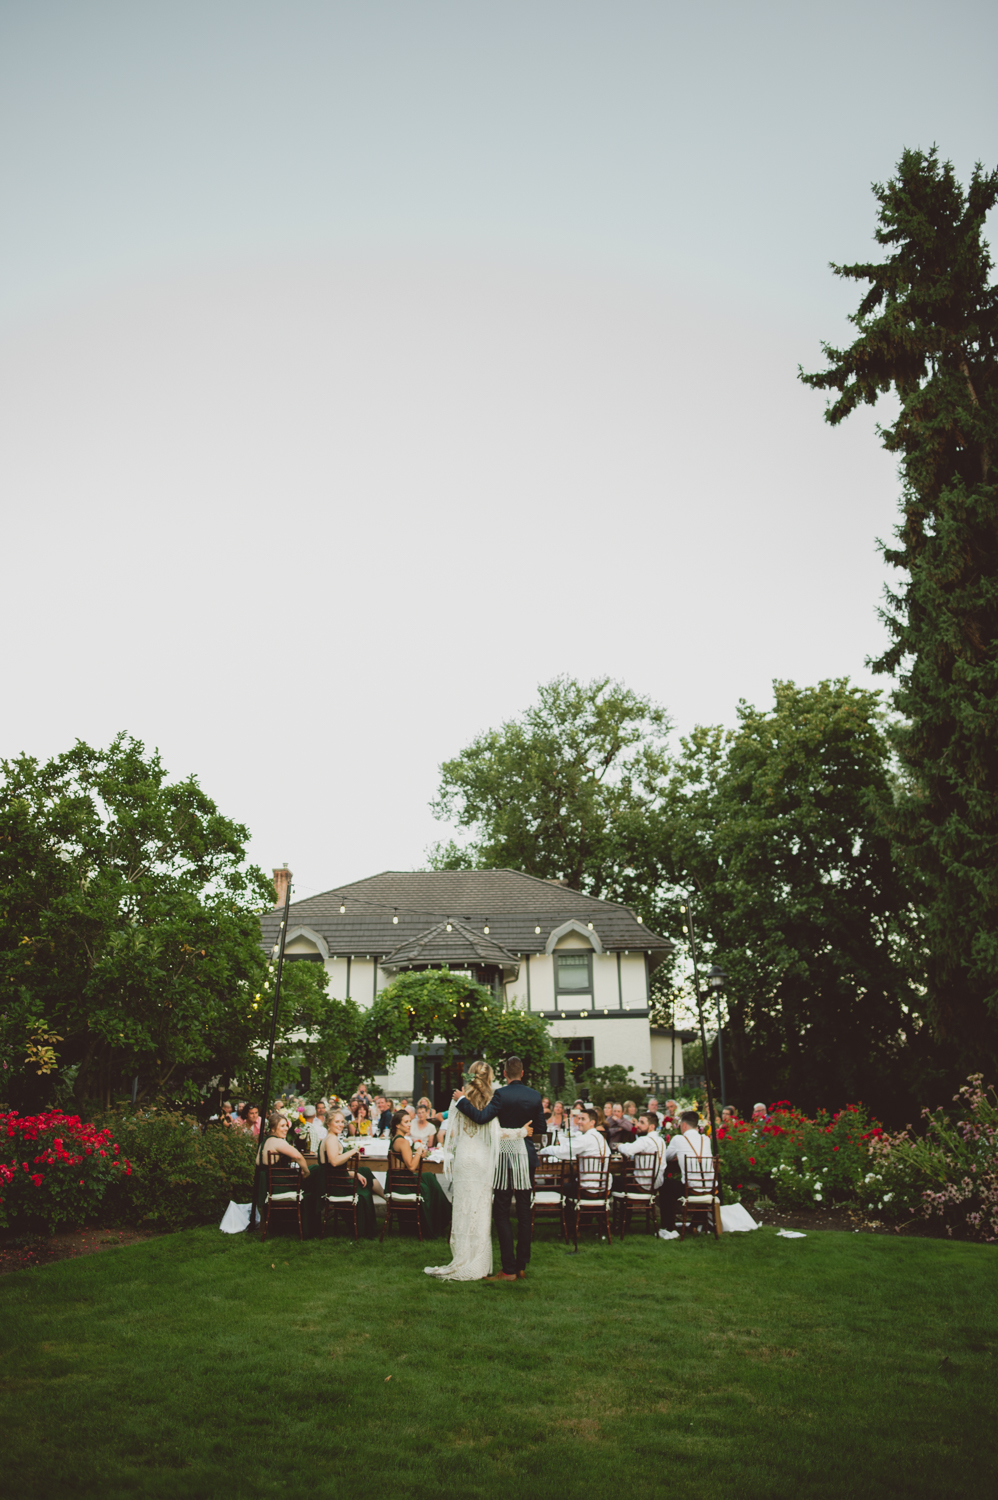 Kelowna Summer modern boho wedding-jessika hunter photo-56.JPG